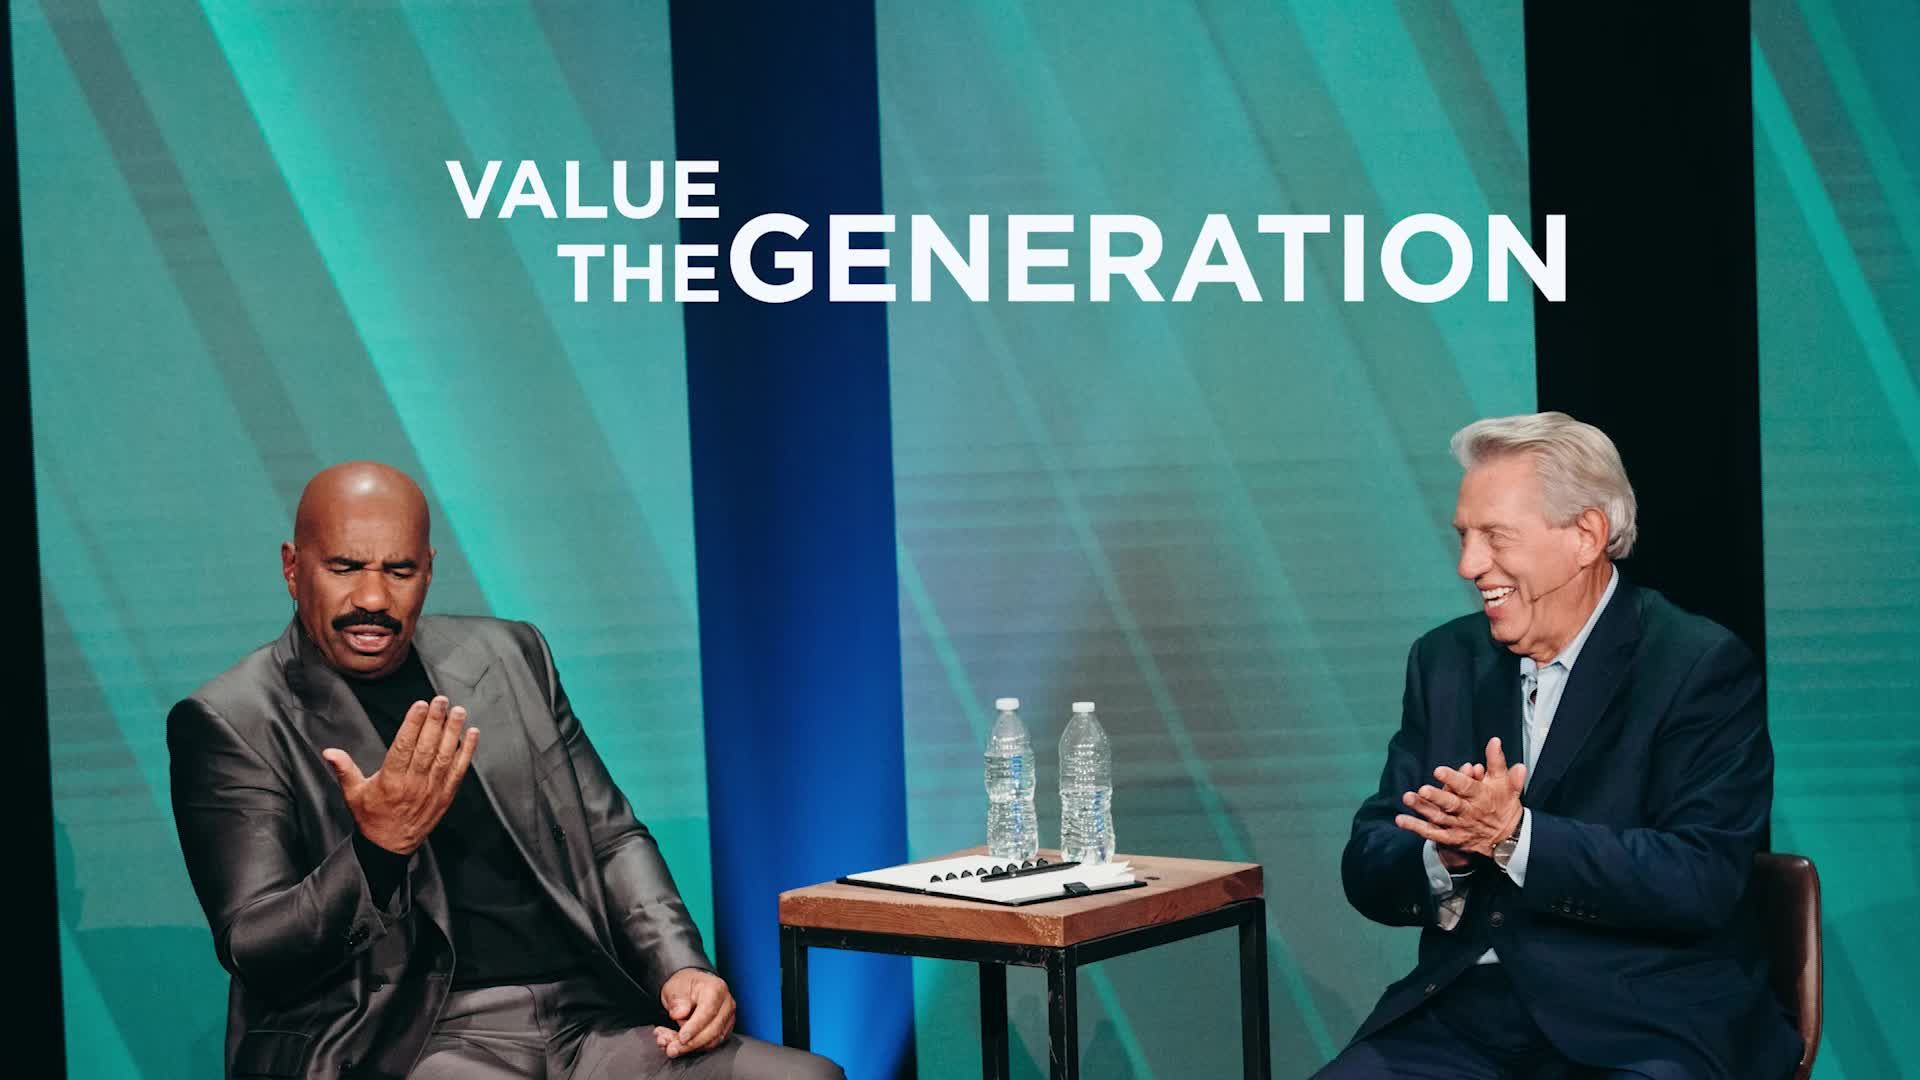 Value the Generation